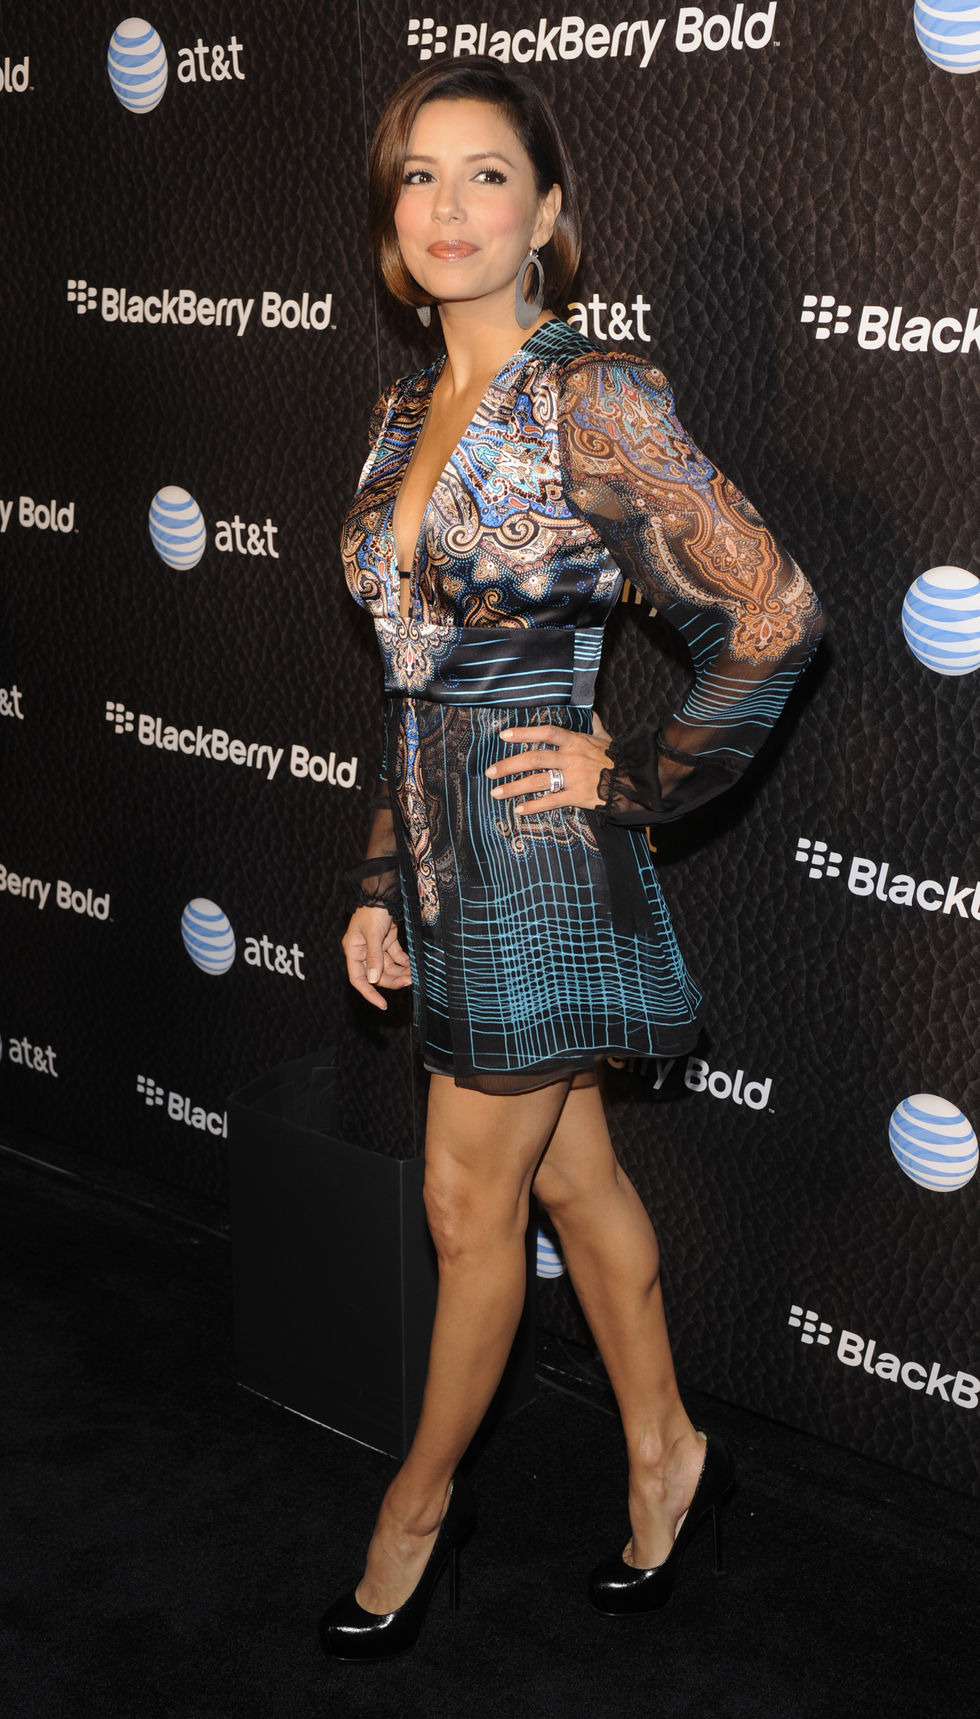 eva-longoria-blackberry-bold-launch-party-in-beverly-hills-01